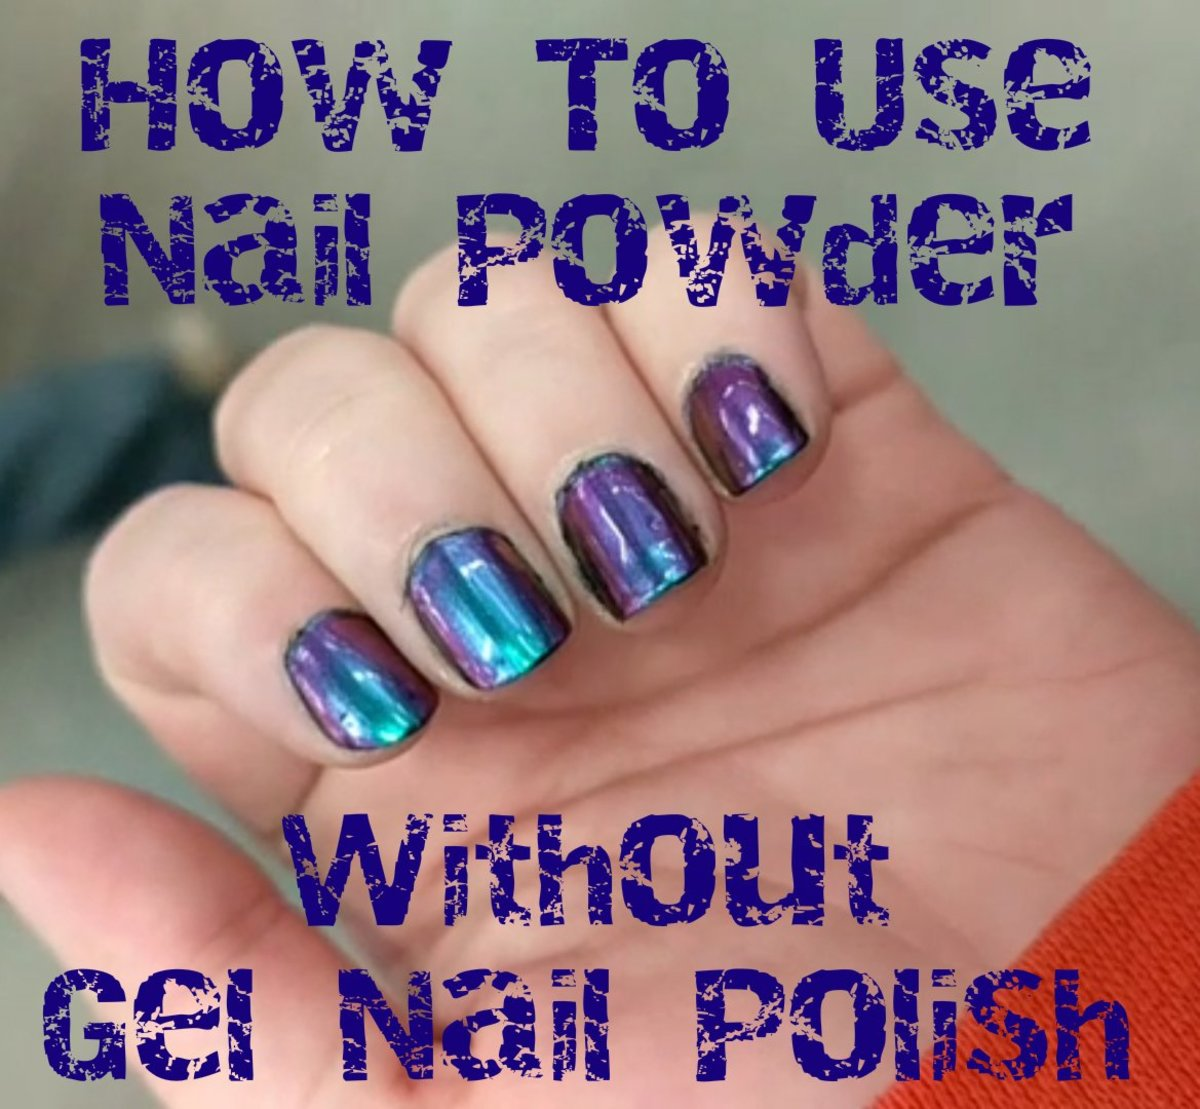 Nails DIY: How to Use Multichrome or Holographic Powder Without Gel Nail Polish